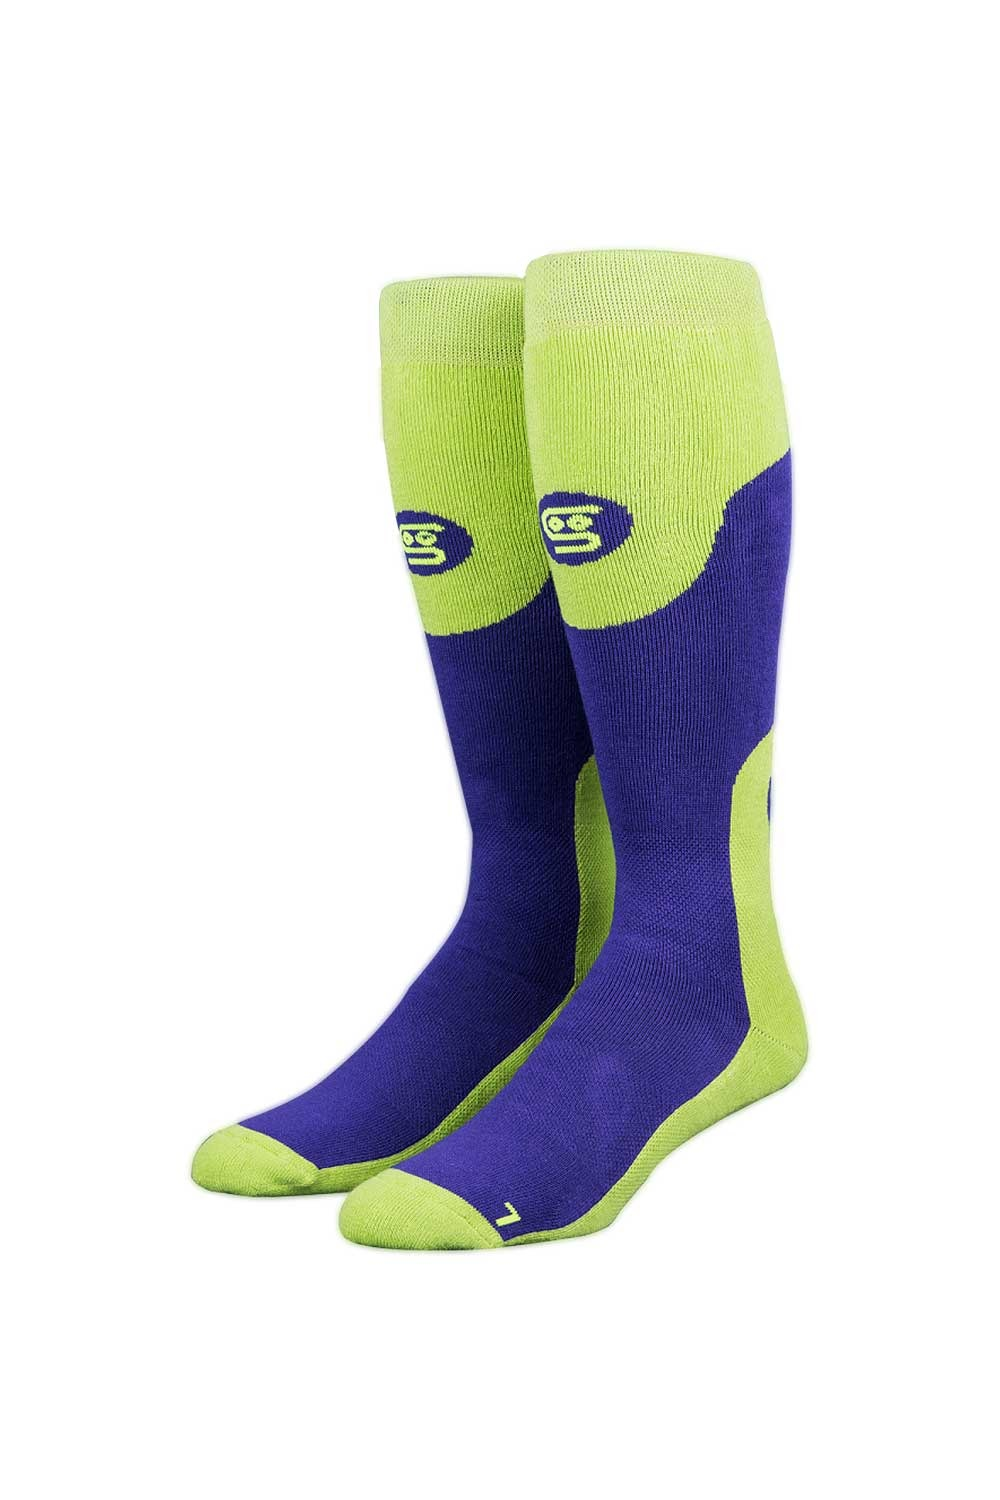 스팅키삭스 퍼플헤이즈 스노보드 양말 JKY711PG/PURPLE/GREEN STINKY SOCKS PURPLE HAZE SOCKS_FJKY711PG